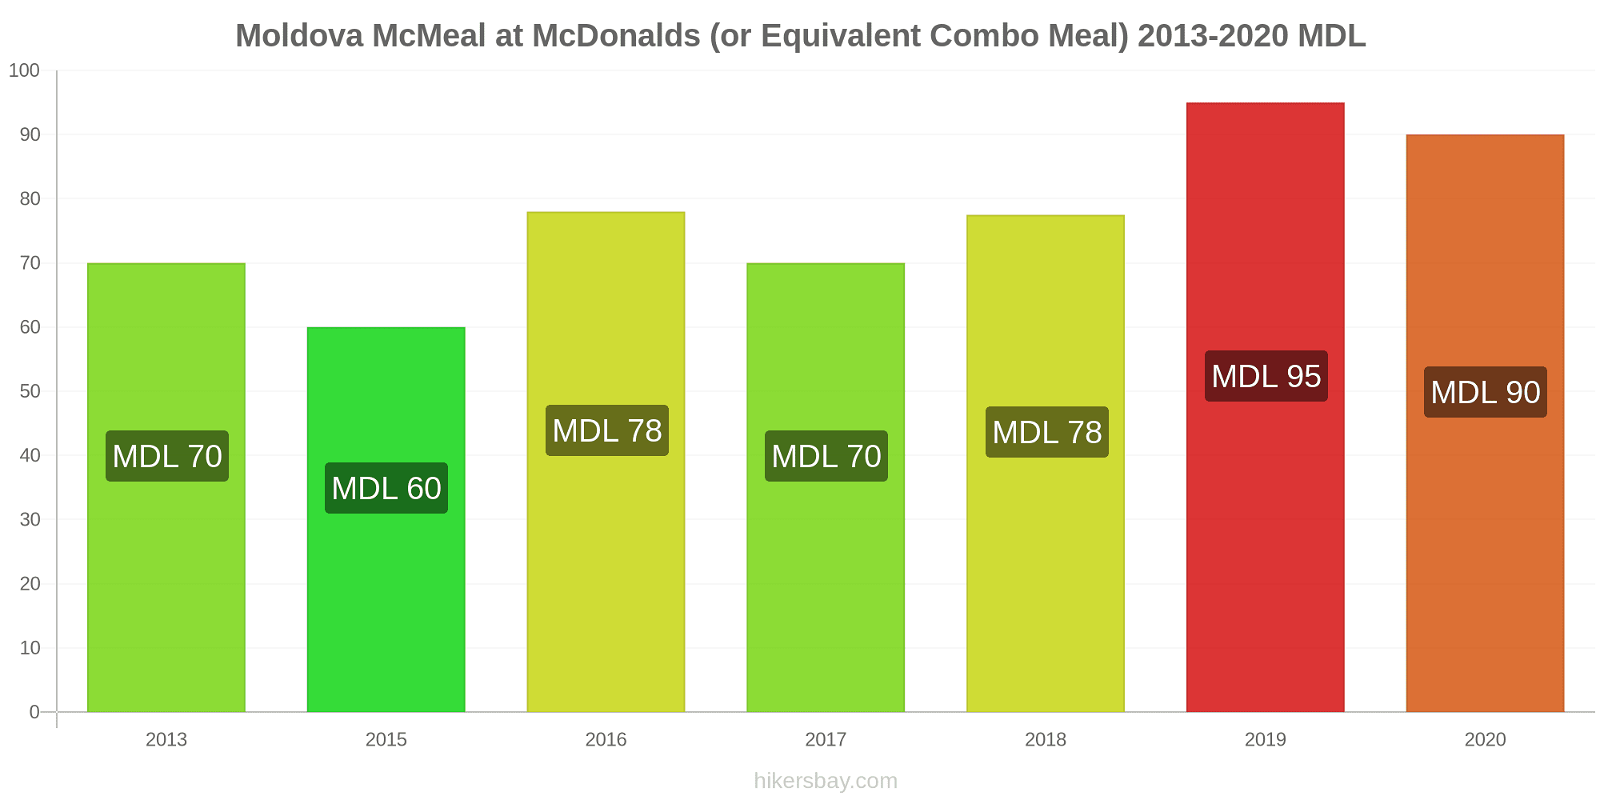 Moldova price changes McMeal at McDonalds (or Equivalent Combo Meal) hikersbay.com